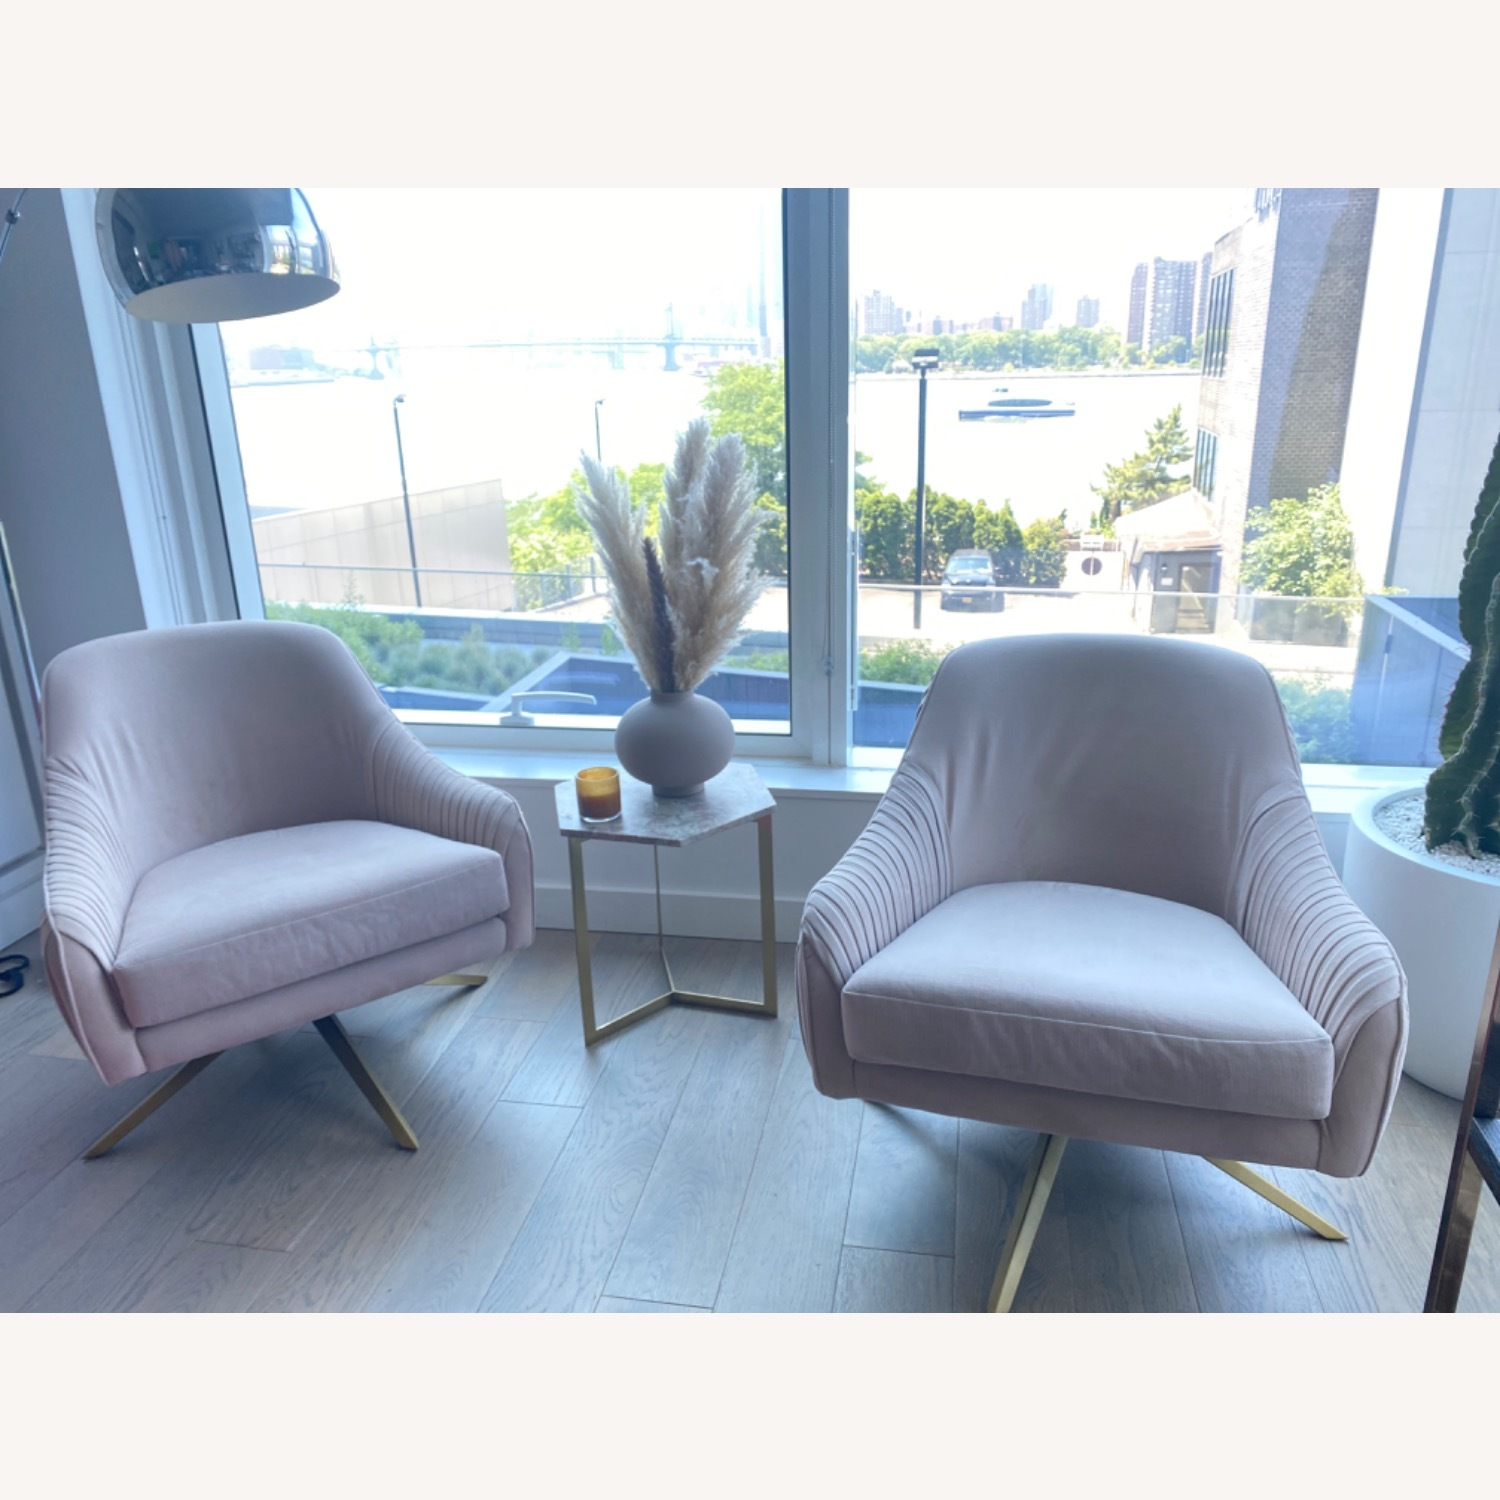 West Elm Blush Chairs - image-2